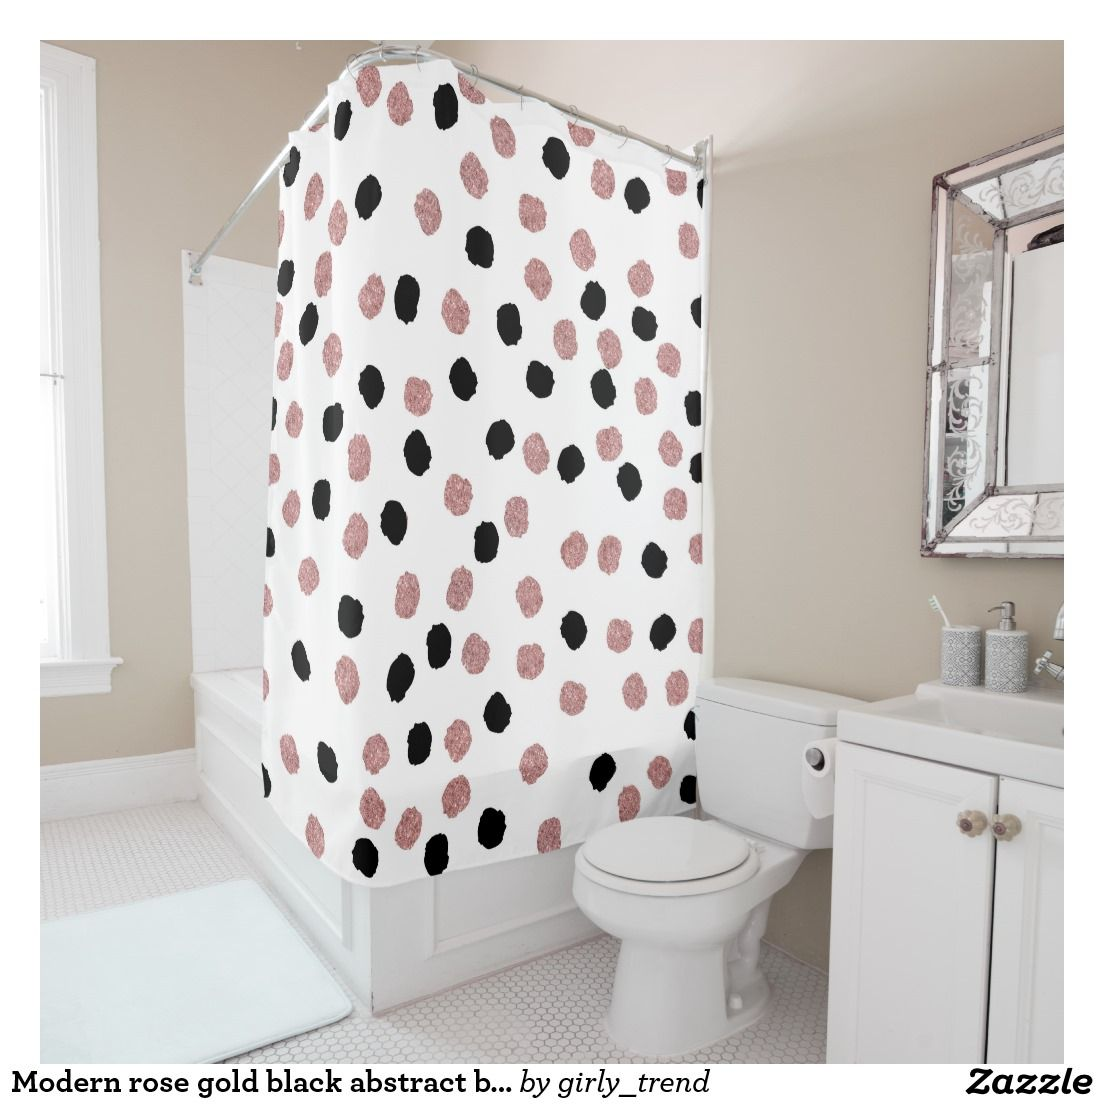 Modern Rose Gold Black Abstract Brush Polka Dots Shower Curtain Artwork Designed By Girly Trend Pric Black Confetti Curtains